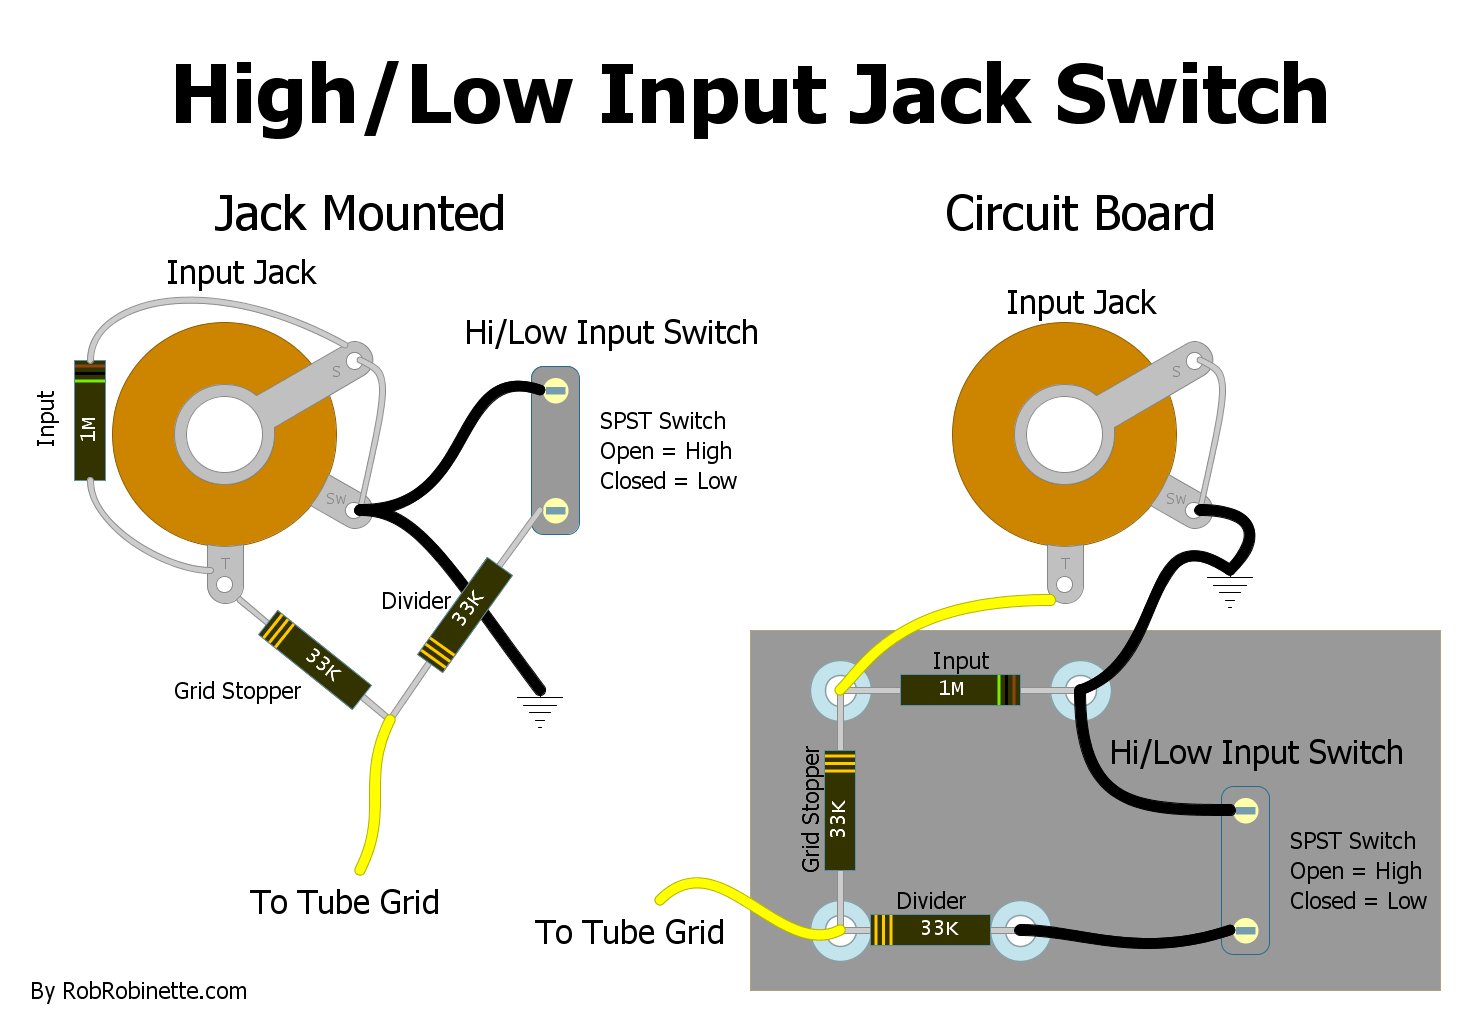 hight resolution of  audio signal to ground just like a standard fender low input jack with the switch open you have the high input and switch closed you get the low